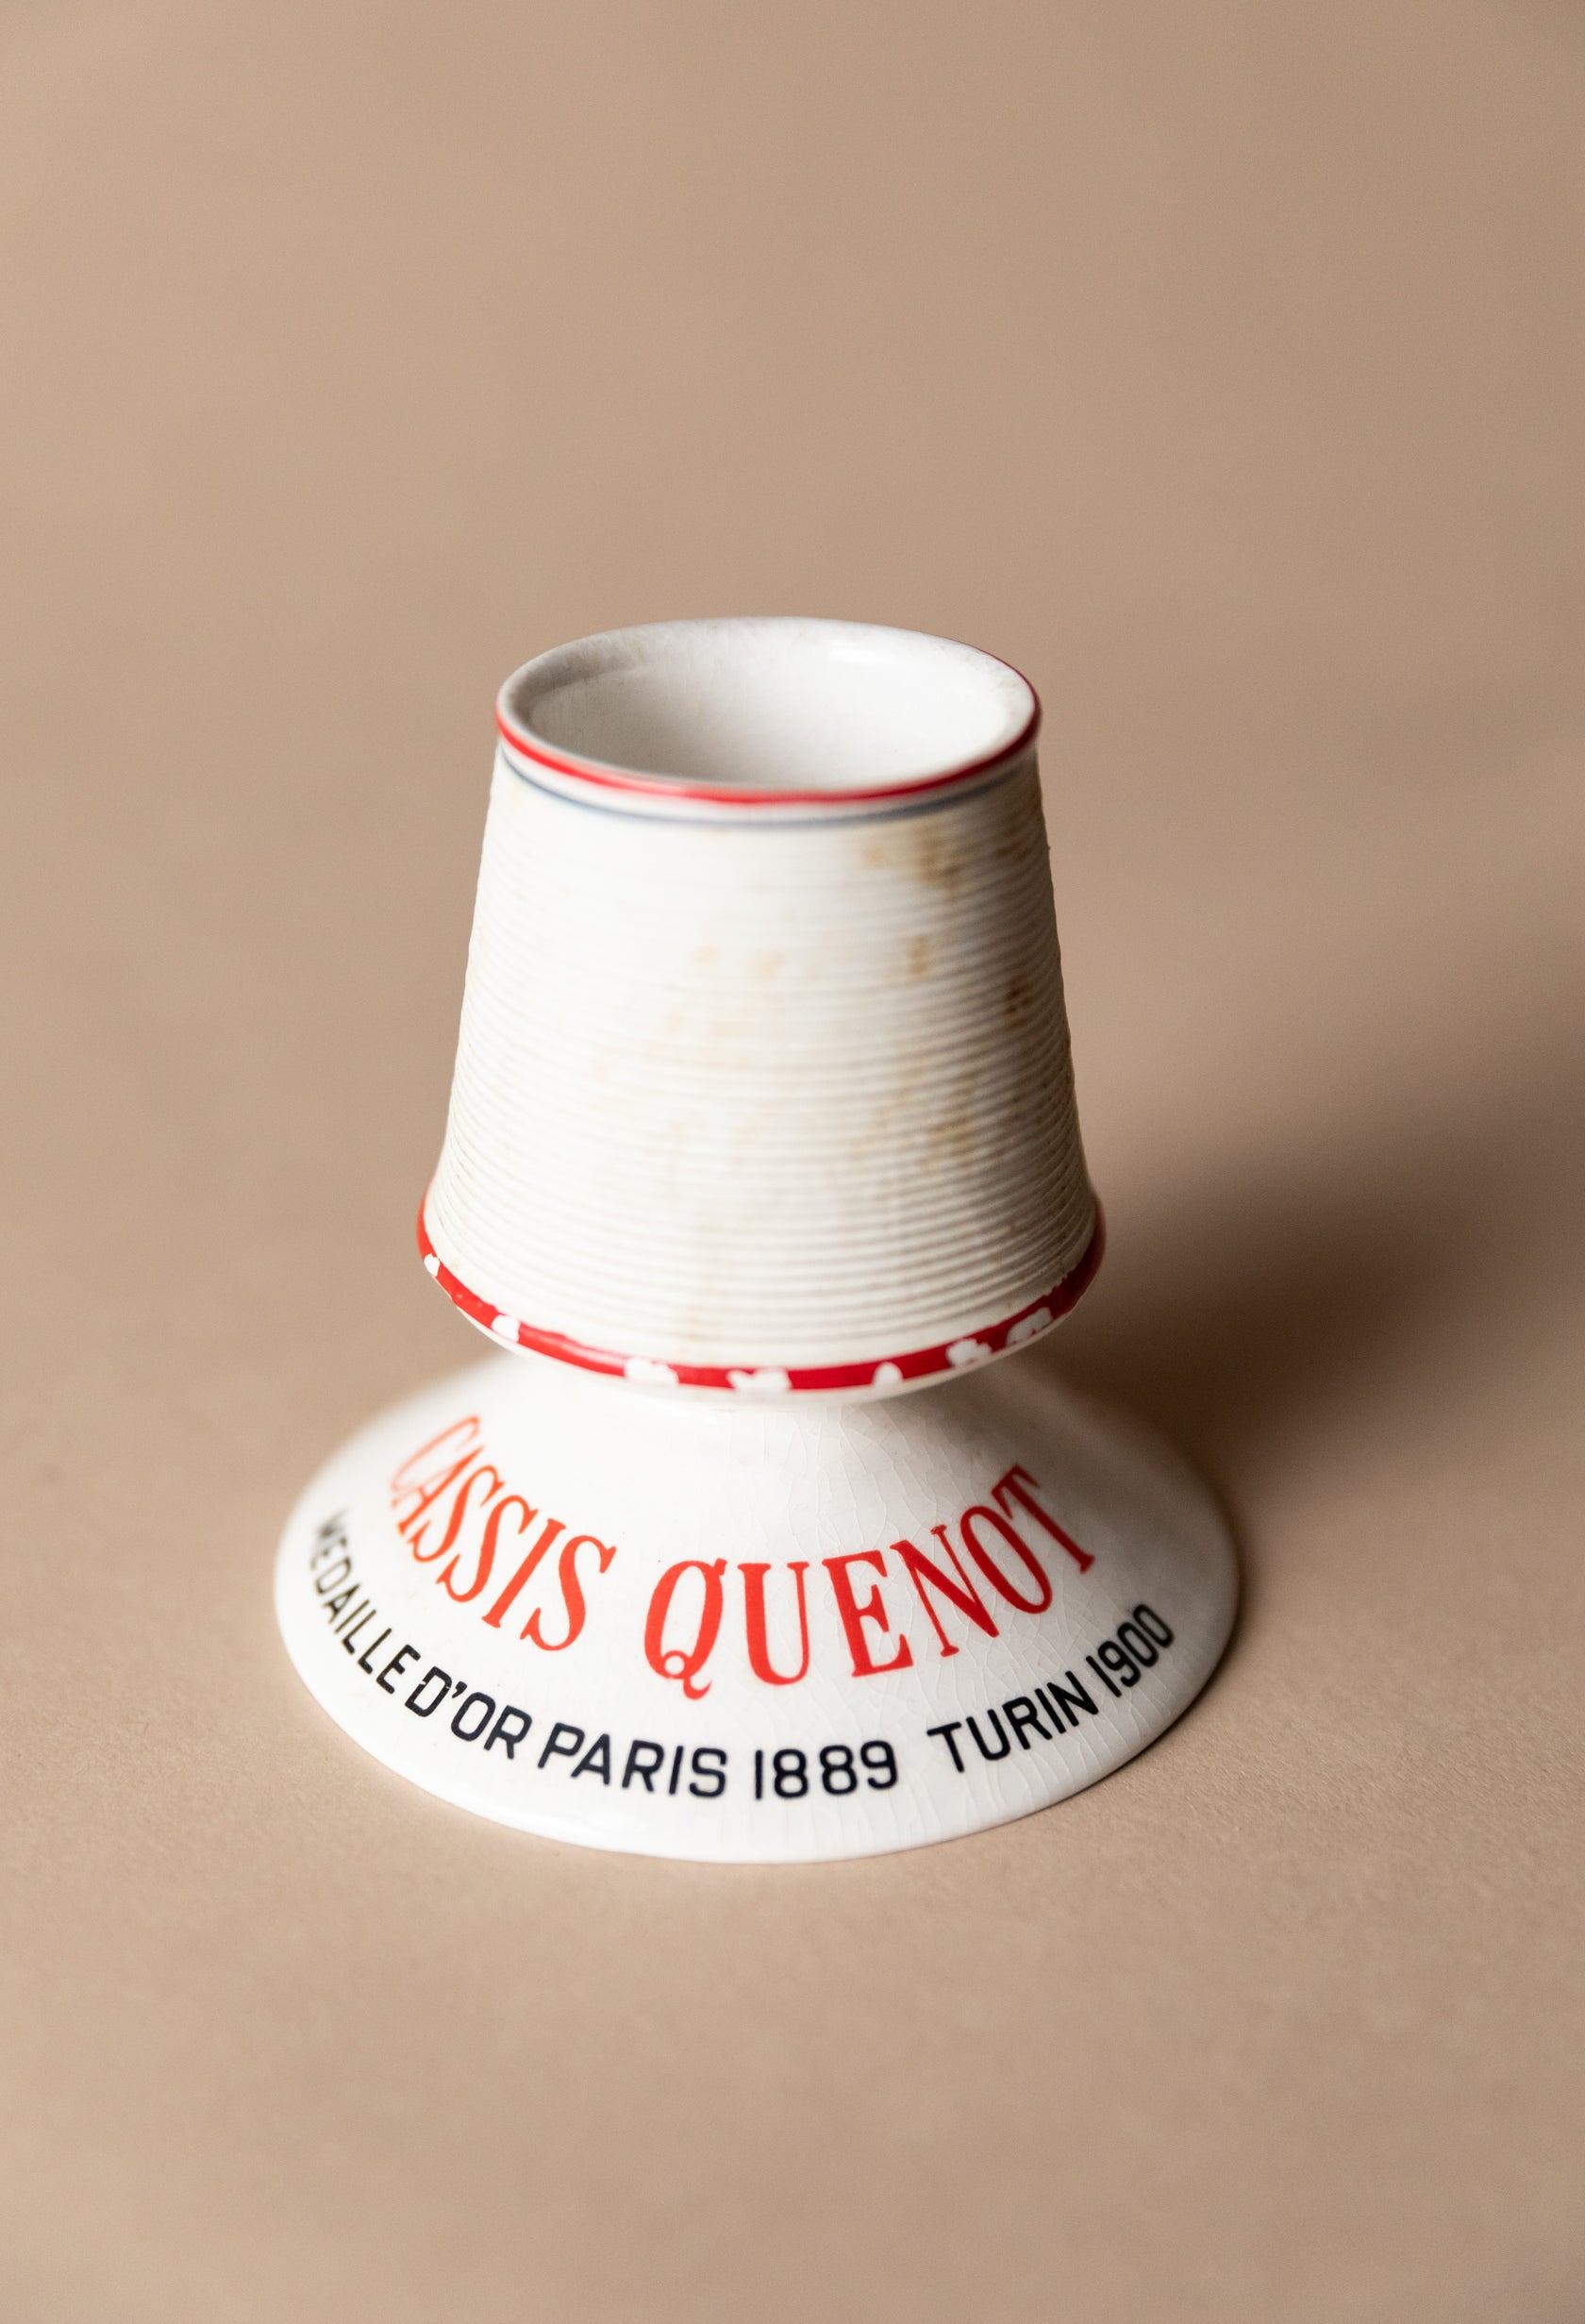 Cassis Quenot Tall Match Striker, c. Paris 1889